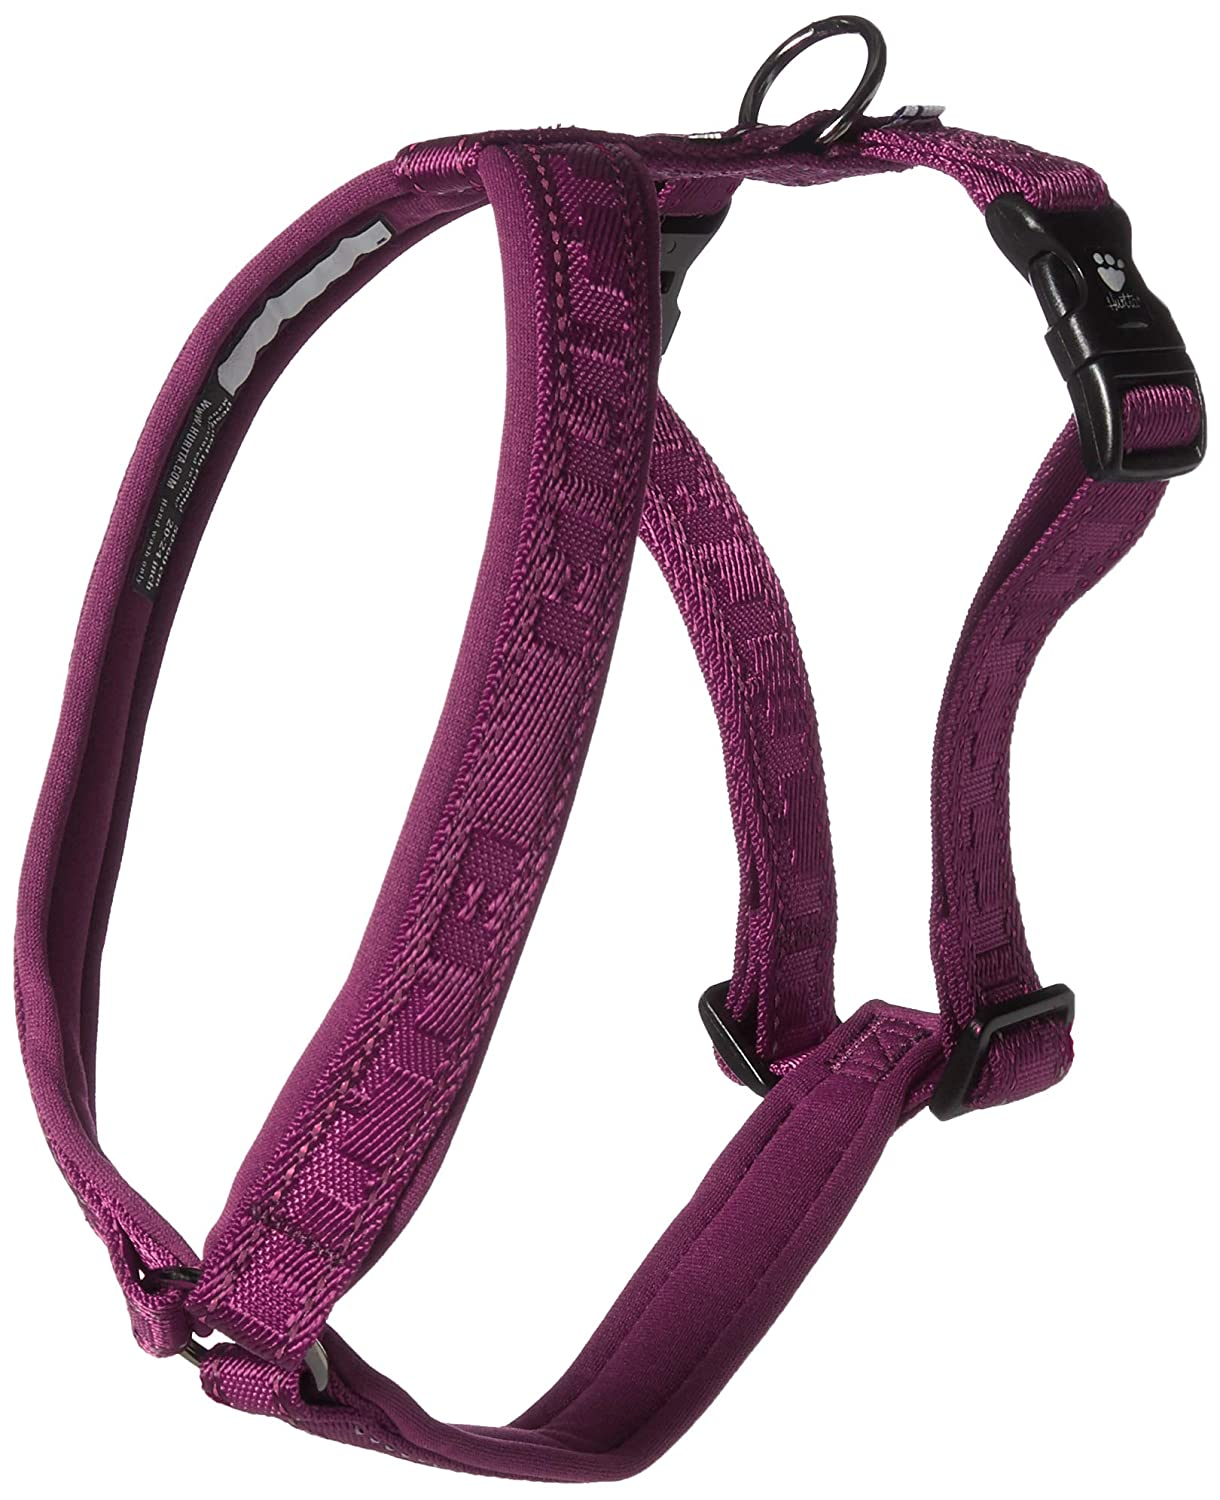 Heather 1214 Hurtta Casual Padded Dog YHarness, Lingon, 32 in